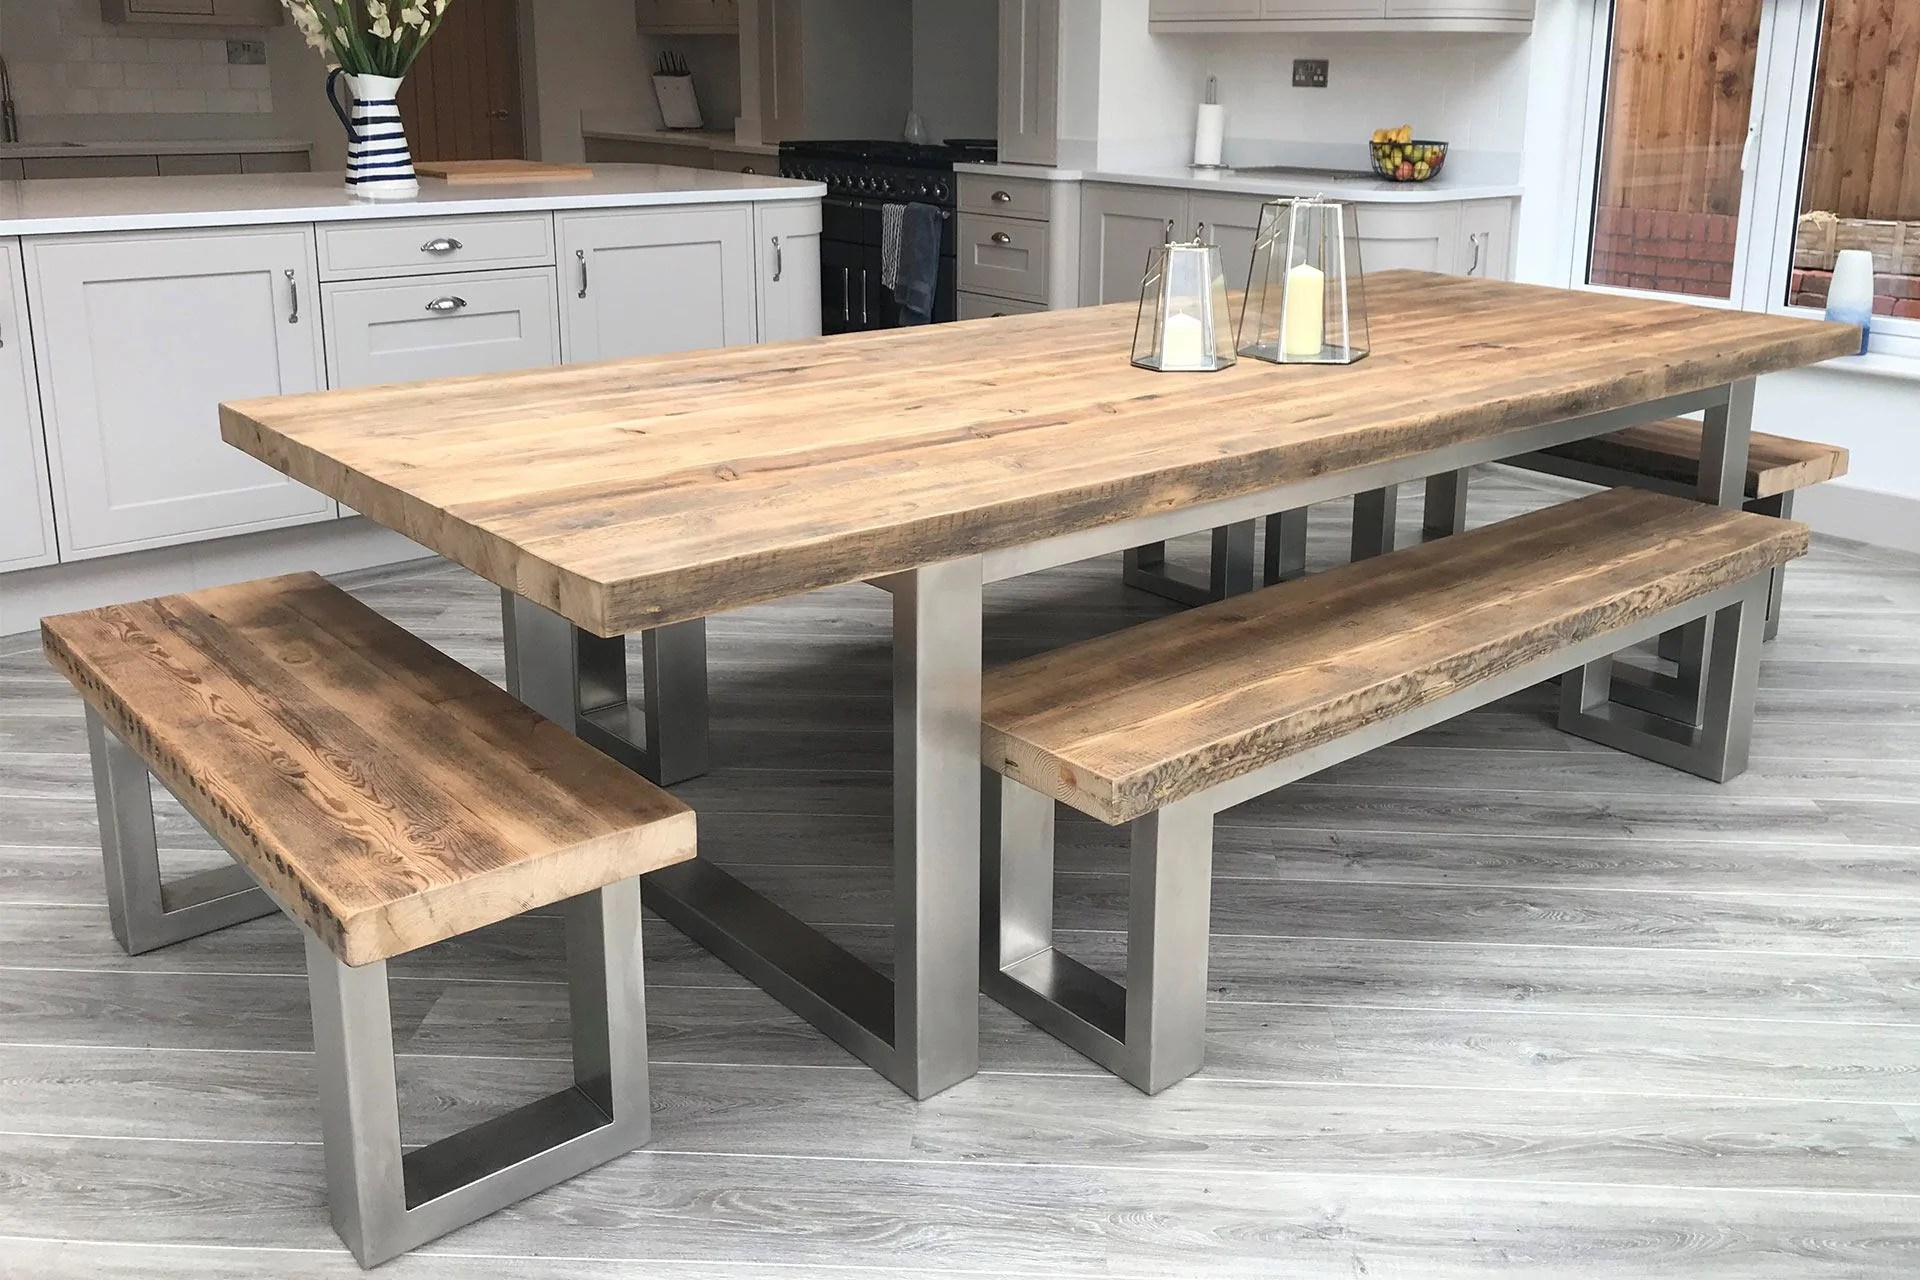 Reclaimed Wood and Metal Rustic Dining Table – Eat Sleep Live